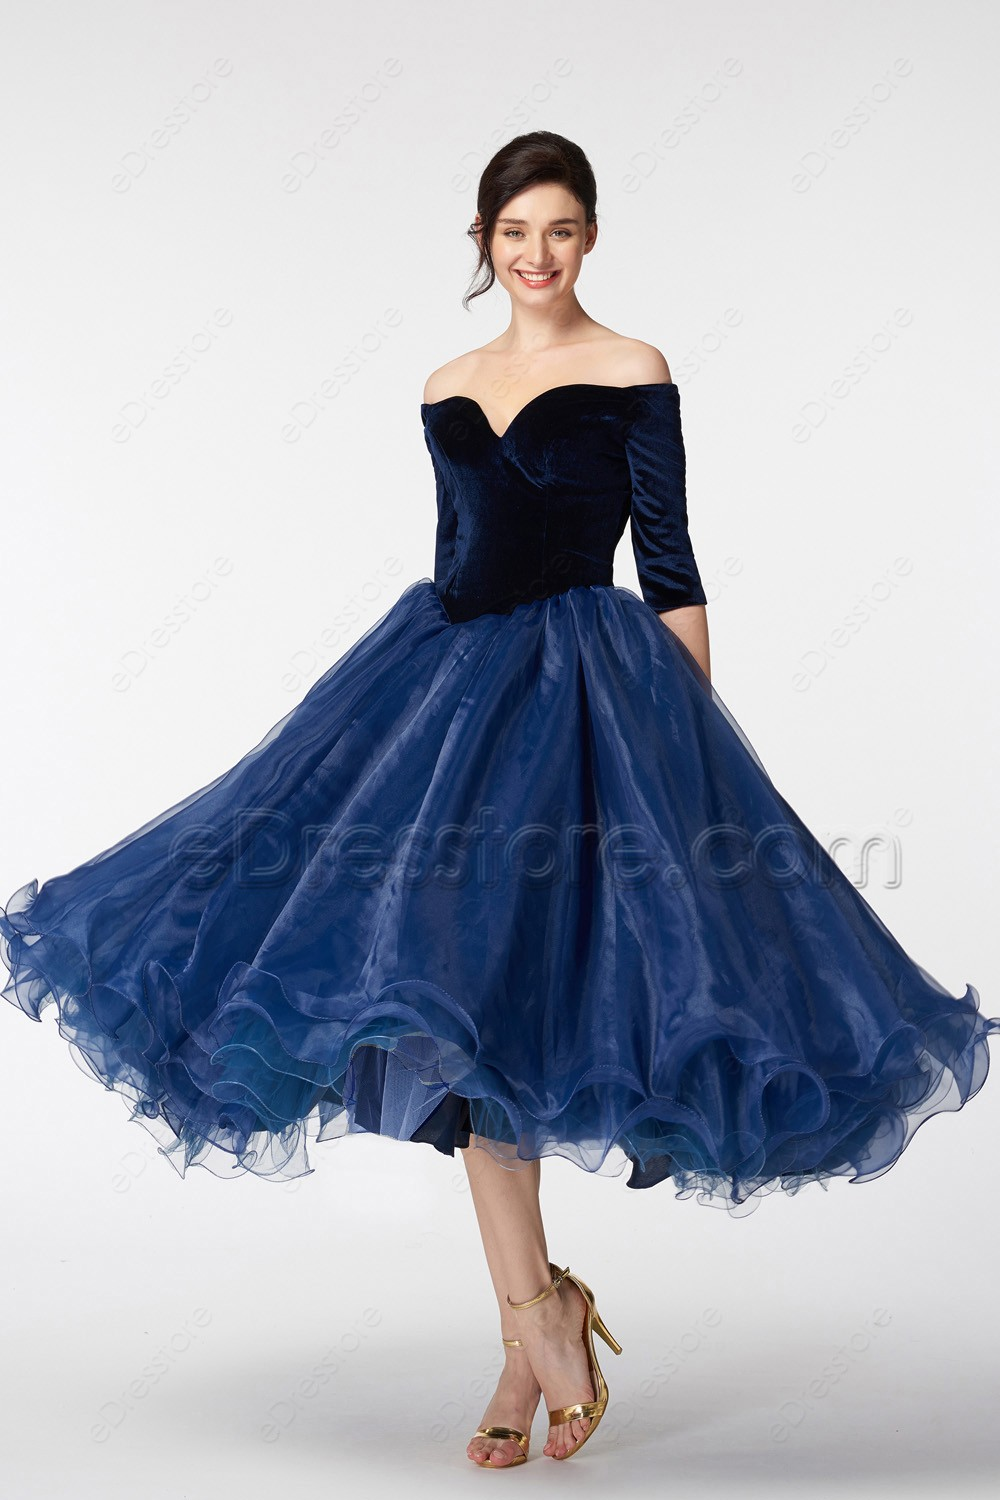 Navy Blue Off The Shoulder Ball Gown Vintage Prom Dress